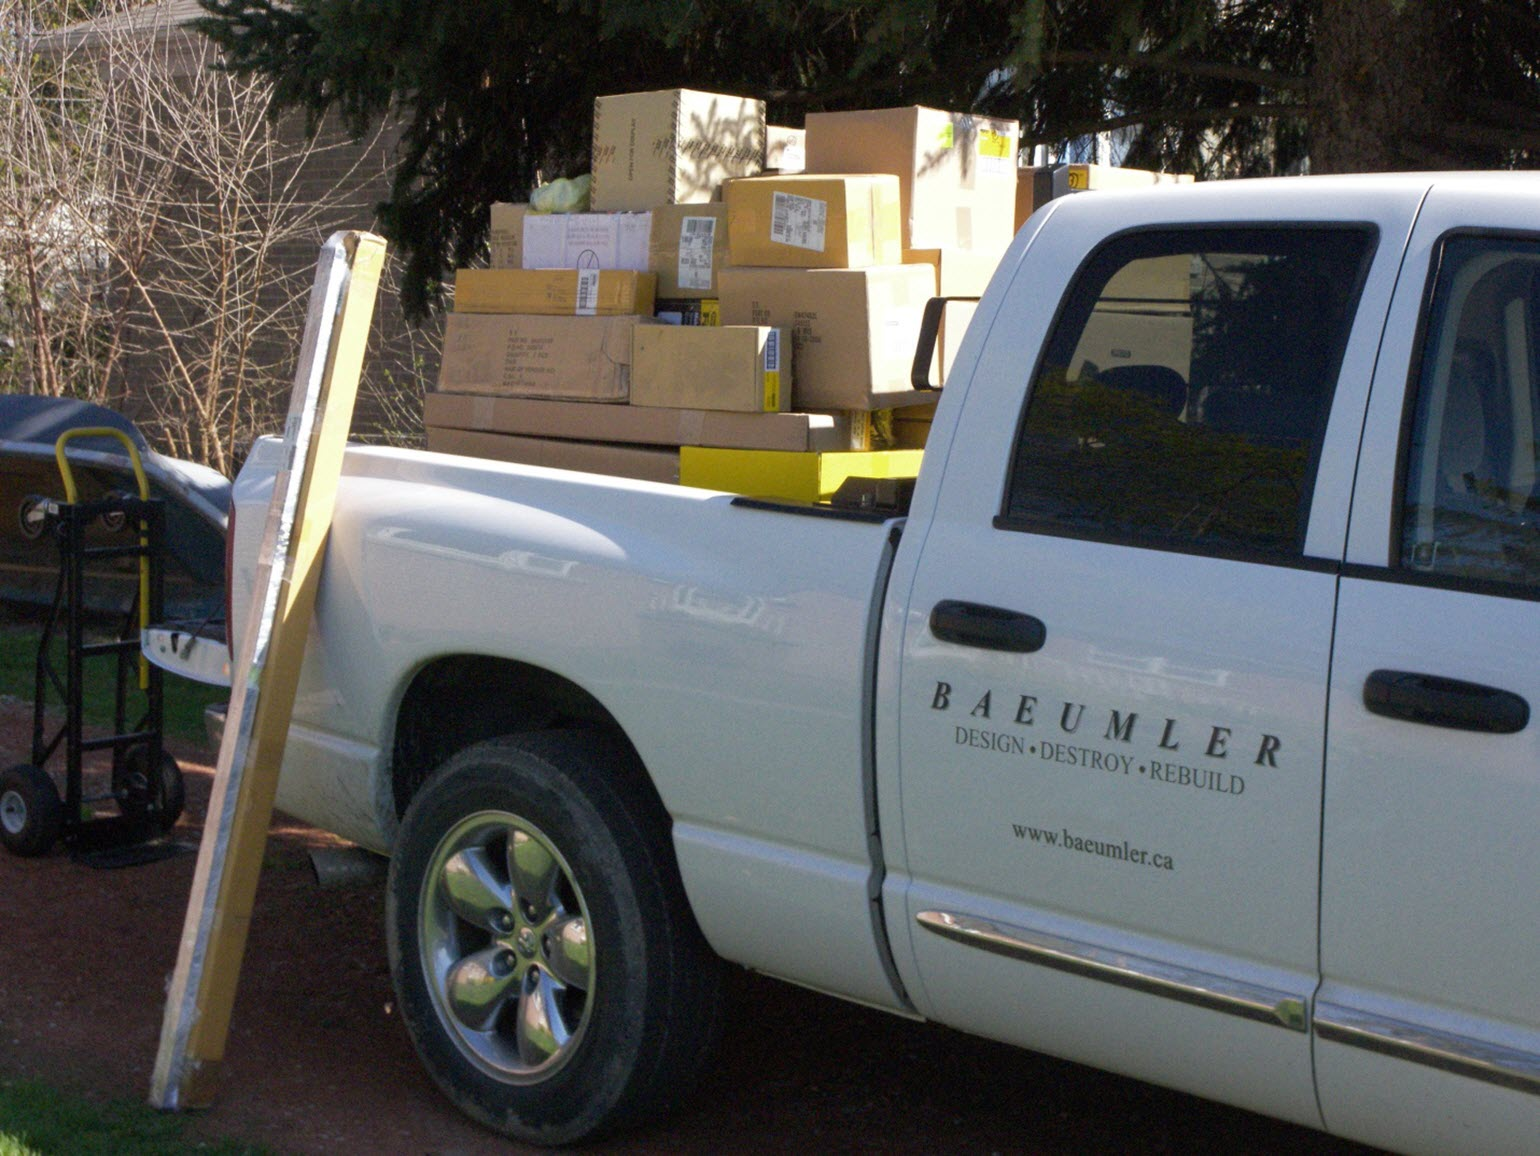 Image of Bryan's white 'Baeumler Construction' pick up